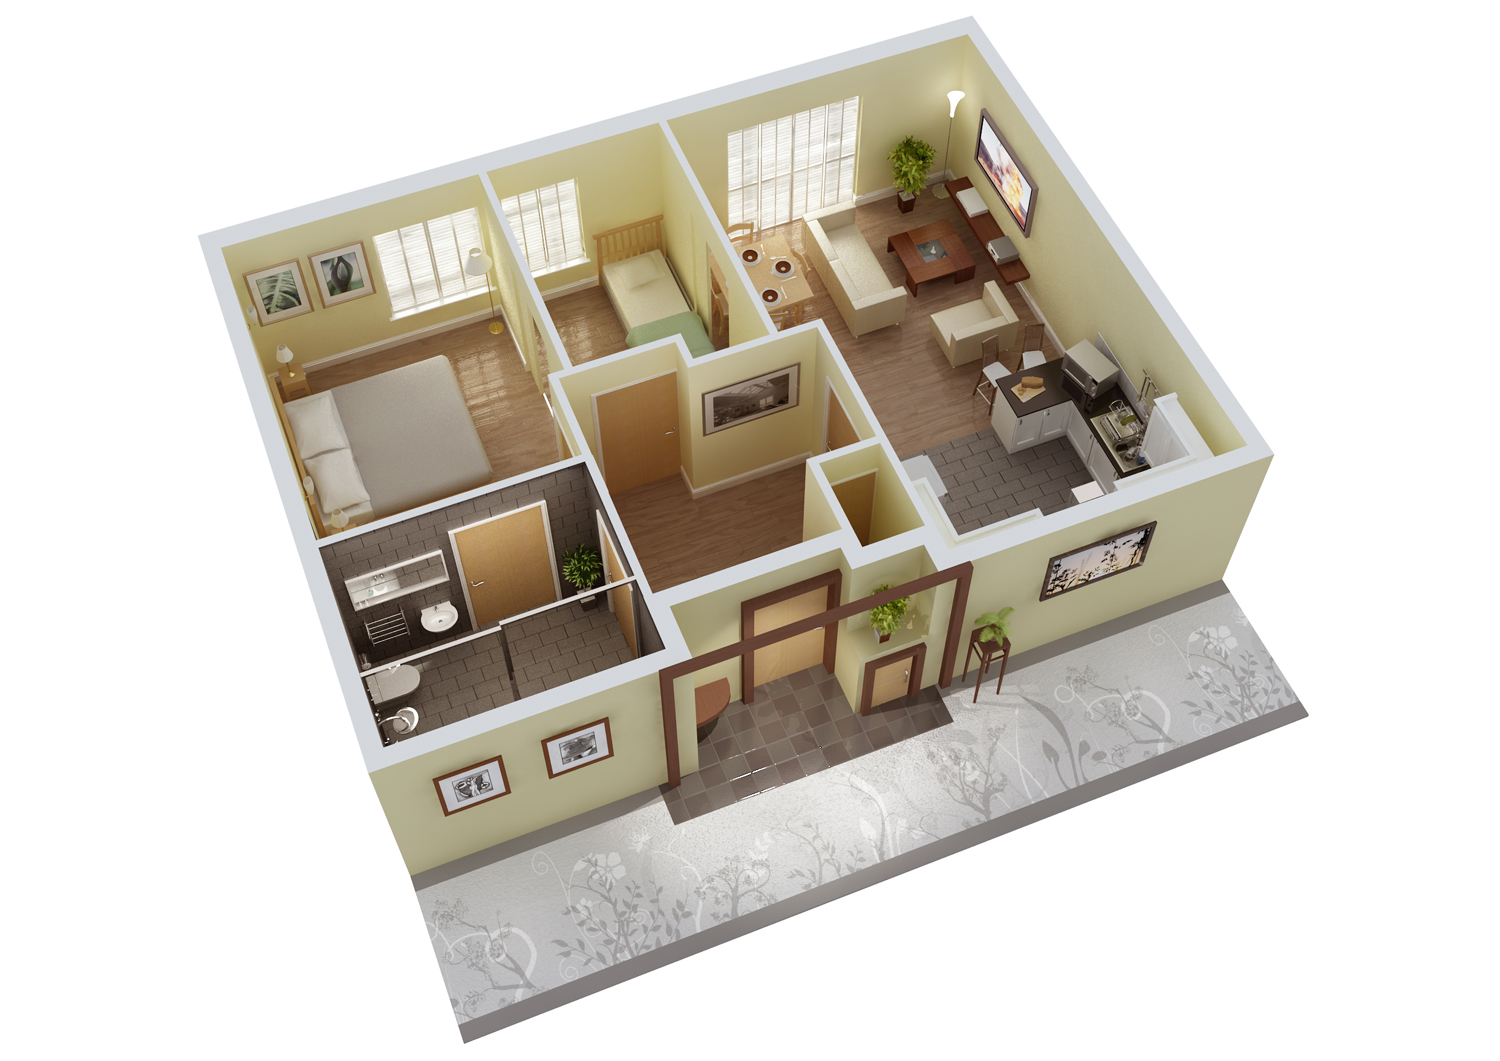 Mathematics resources project 3d floor plan for 3d home floor plan design